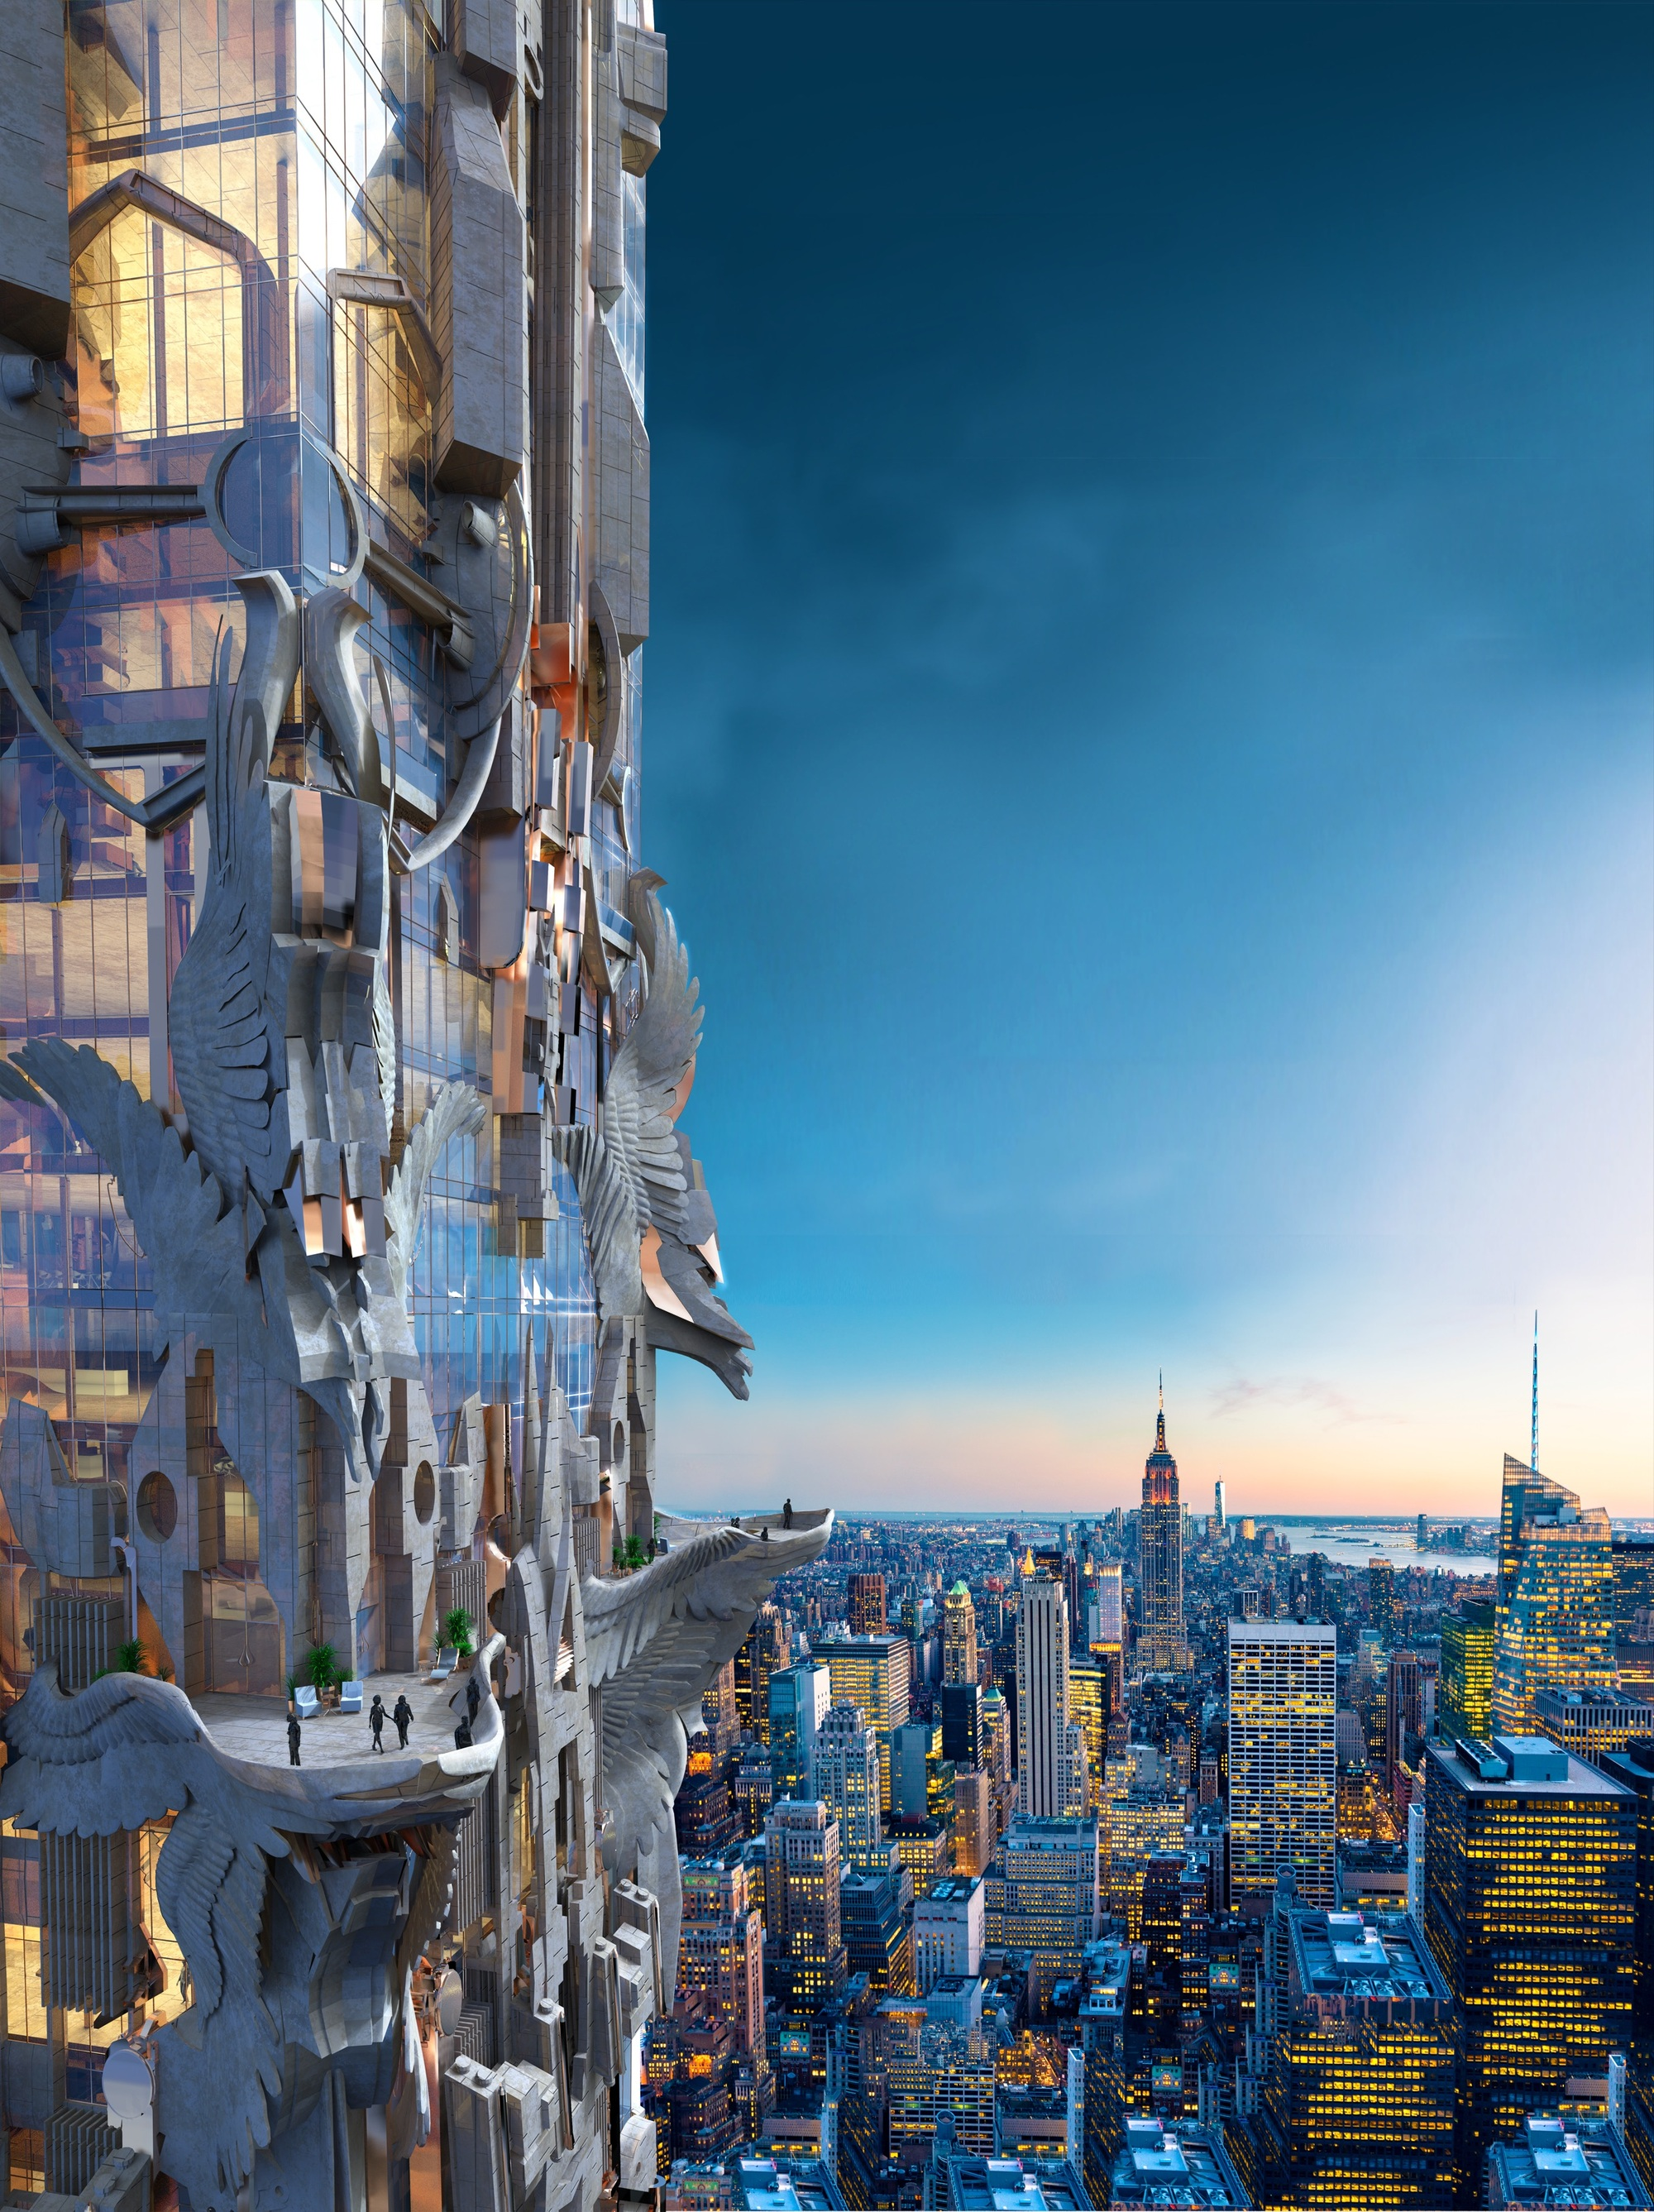 Stunning Mark Foster Gage us Manhattan Skyscraper Takes Gothic Architecture to New Heights ArchDaily